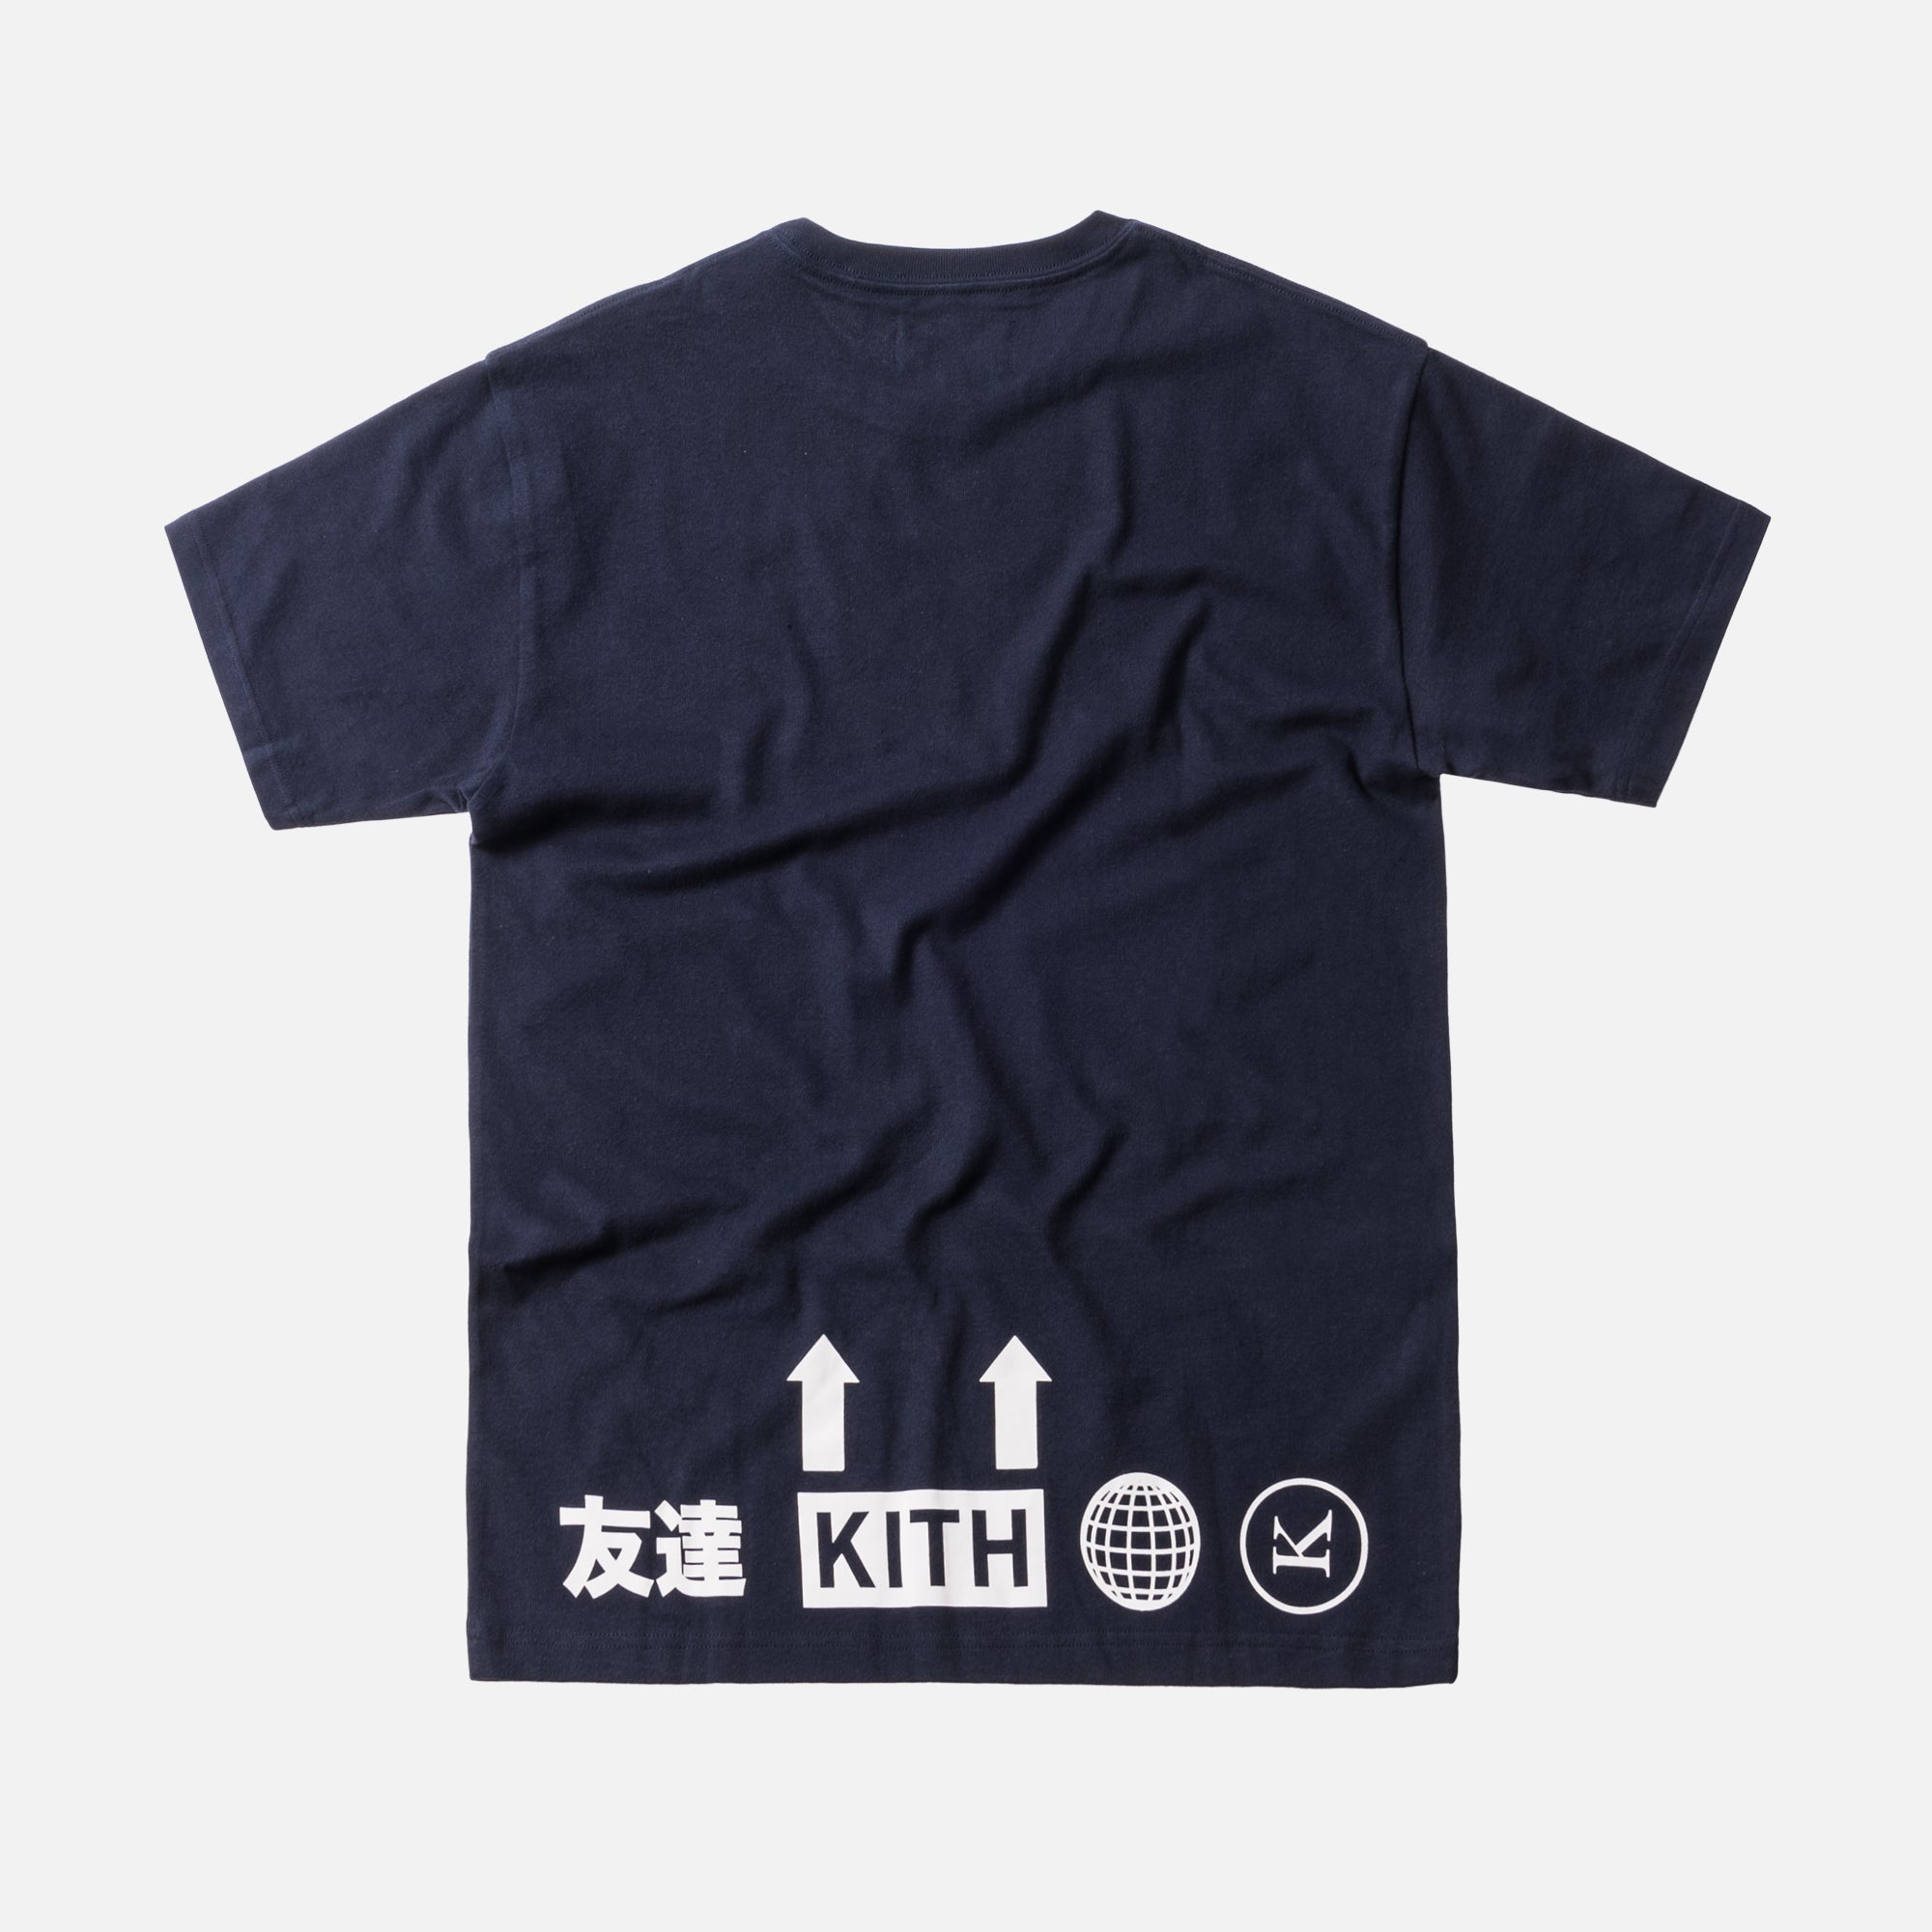 Kith Embrace Youth Tee - Navy